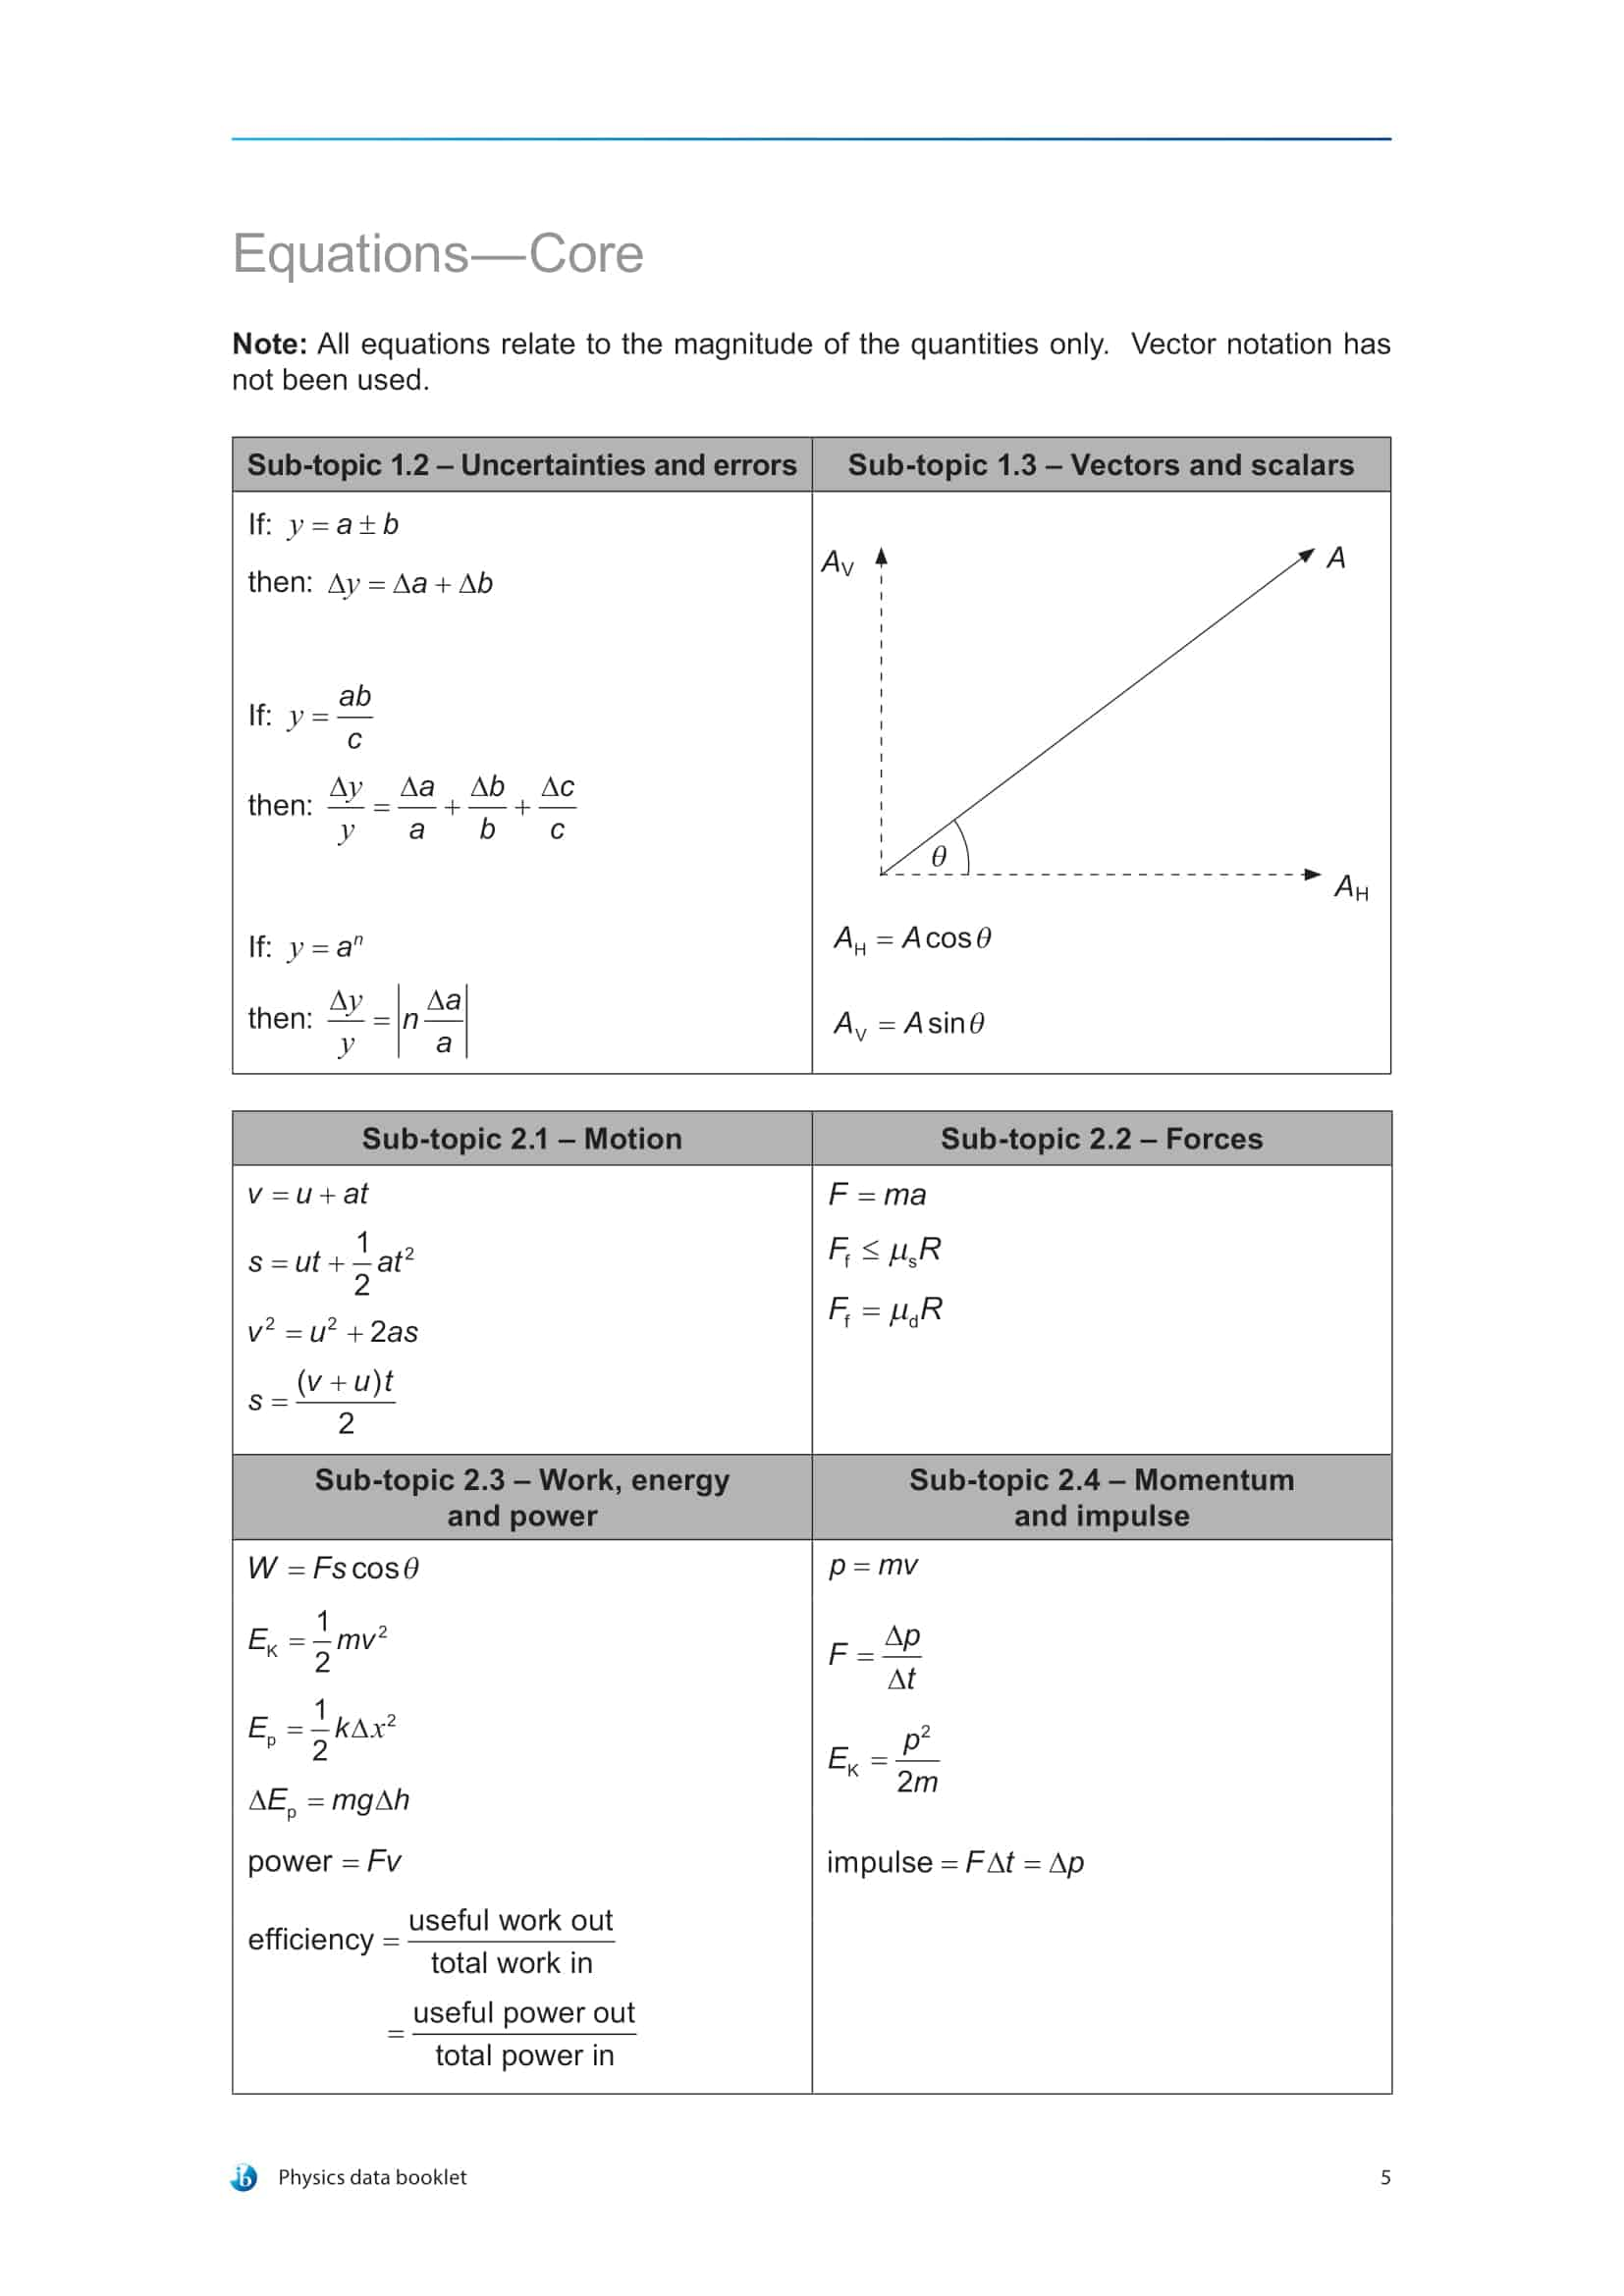 IB Physics Data Booklet-09